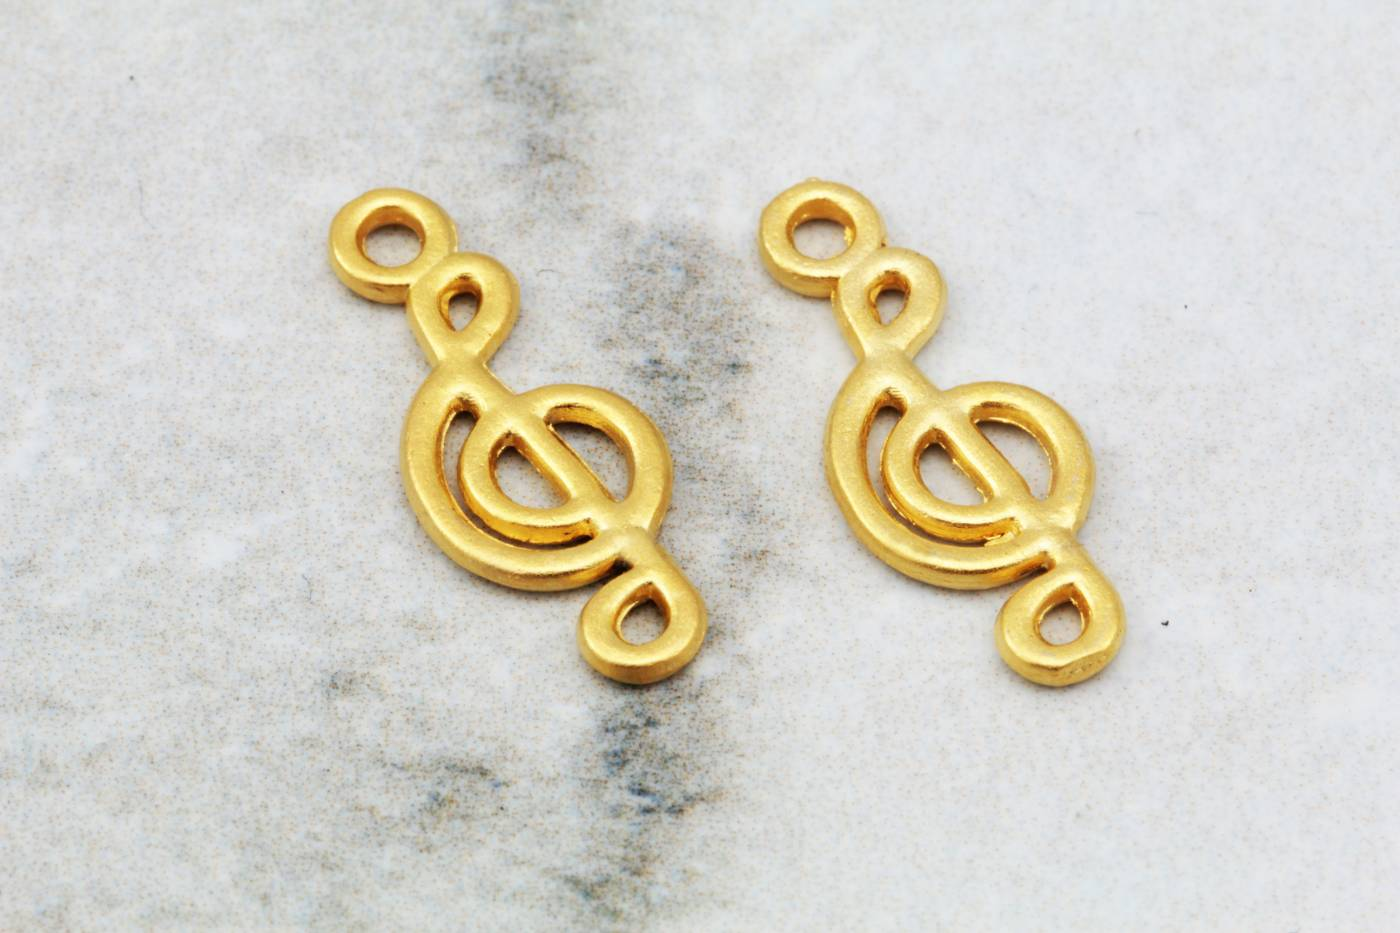 gold-plated-treble-clef-music-pendants.jpg